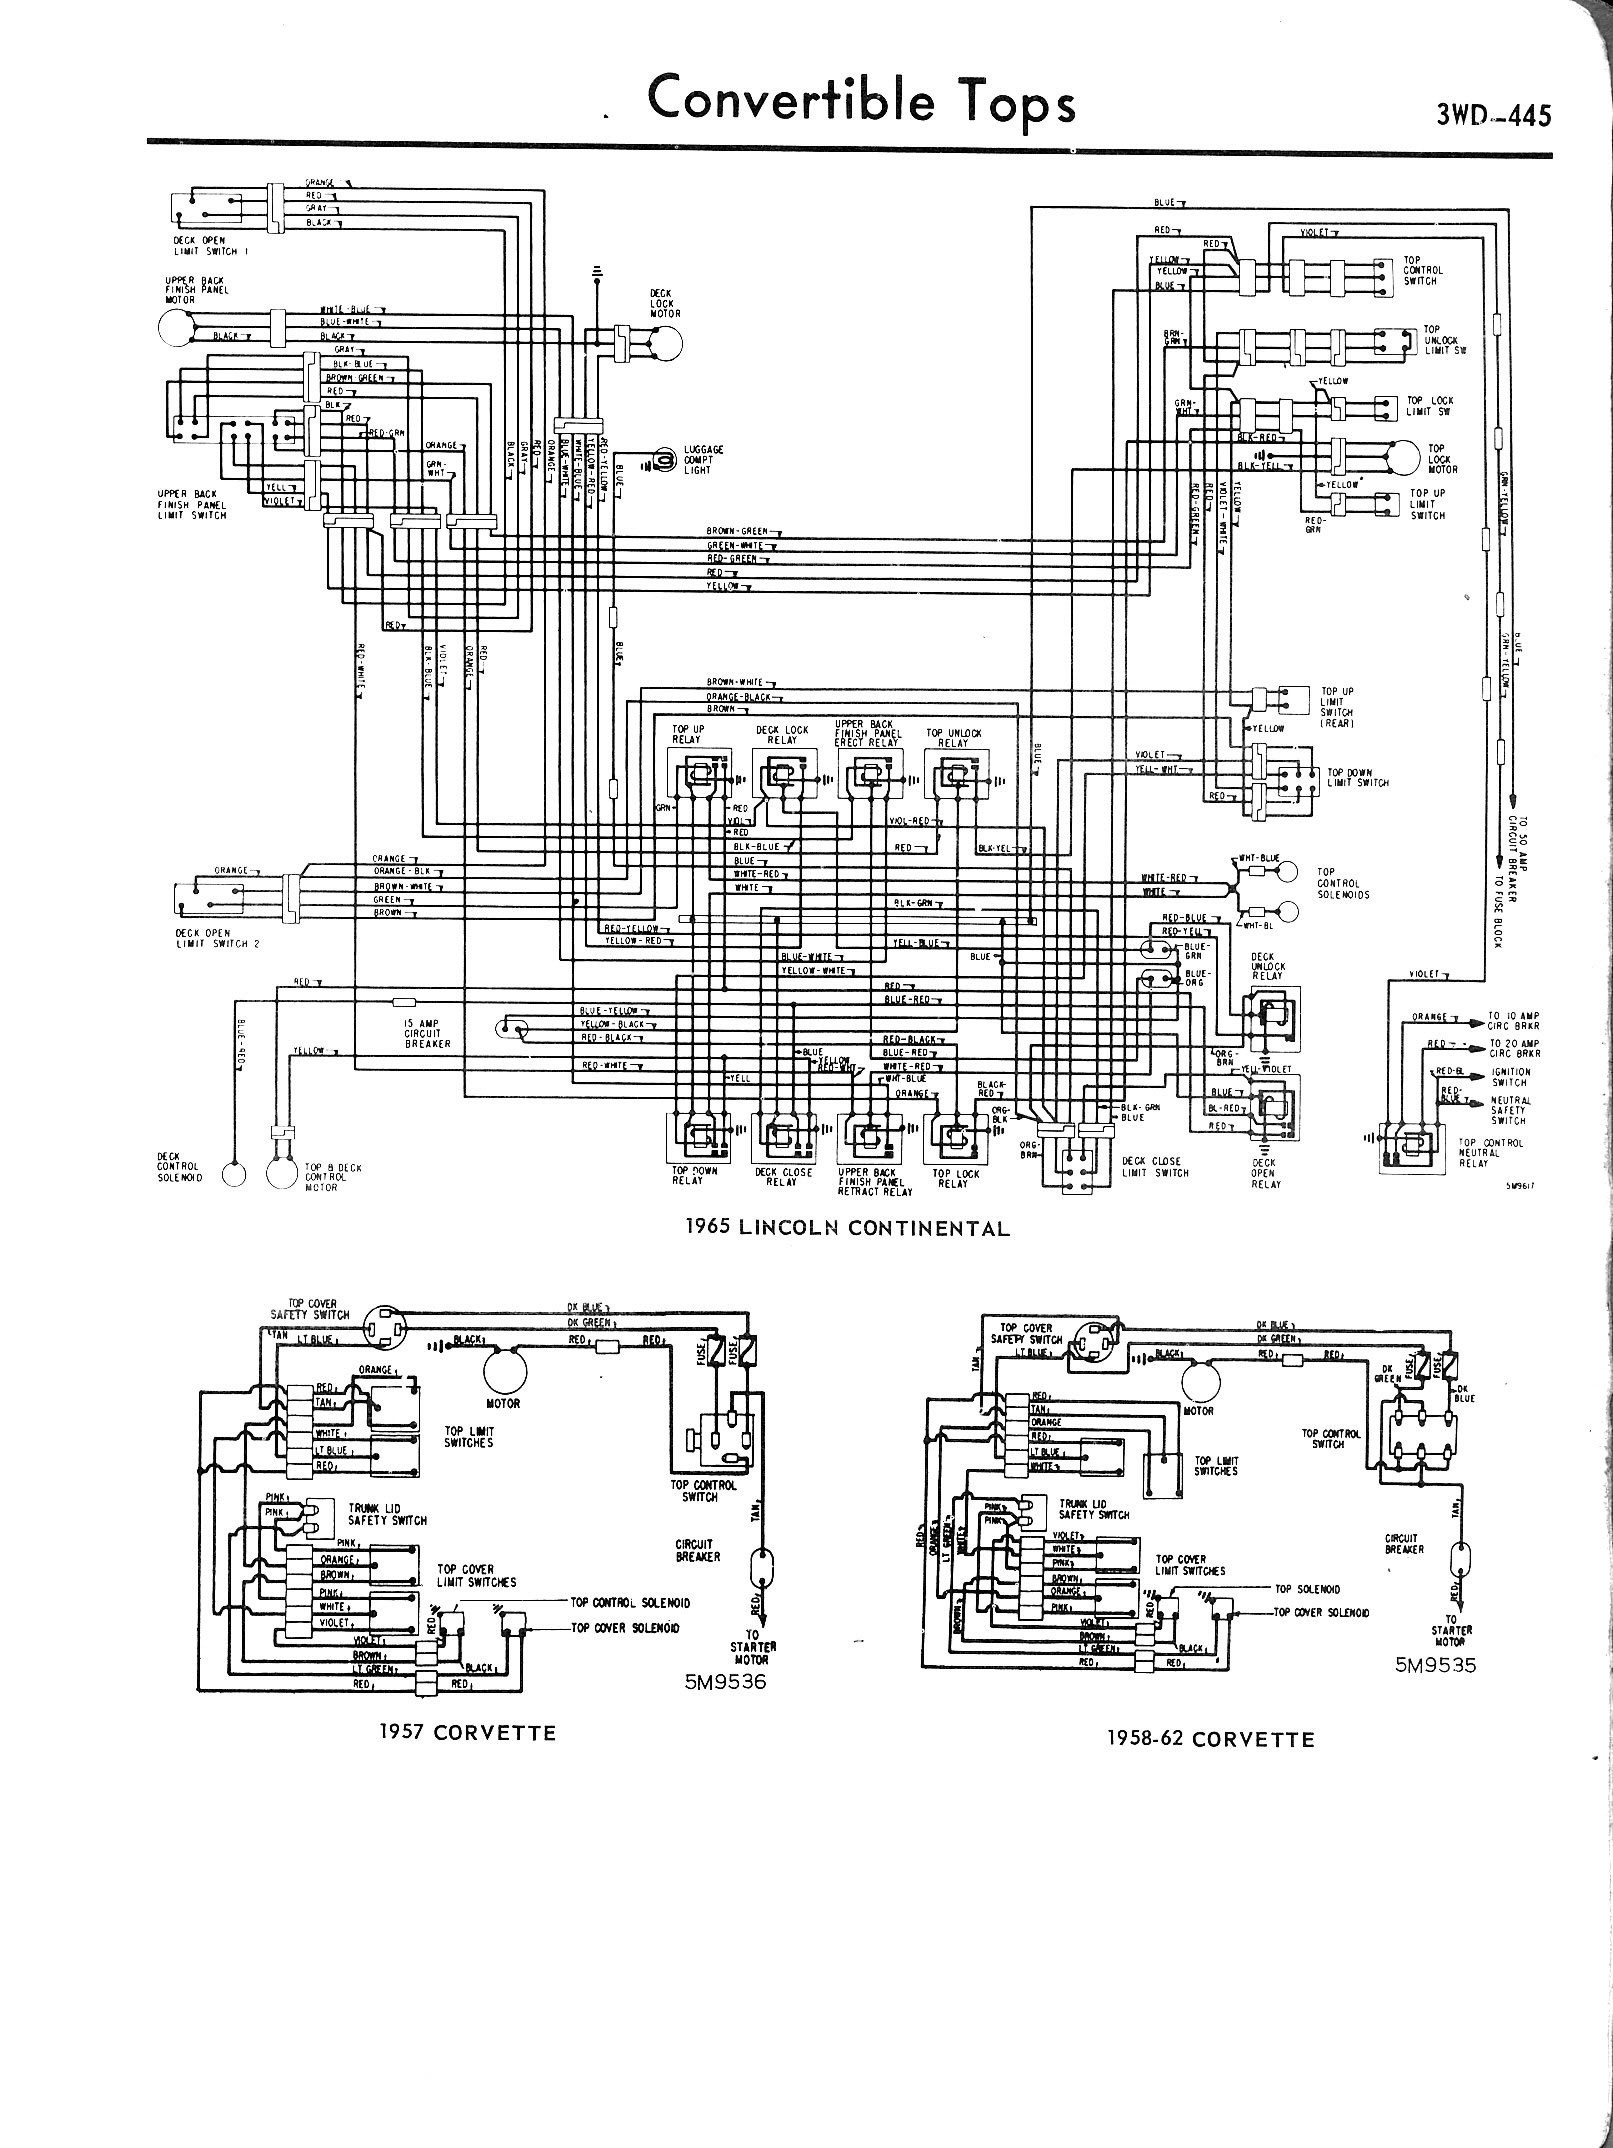 3WD 445_jpg 1958 corvette headlight wiring diagram wiring diagram simonand 1957 chevy wiring harness at bayanpartner.co